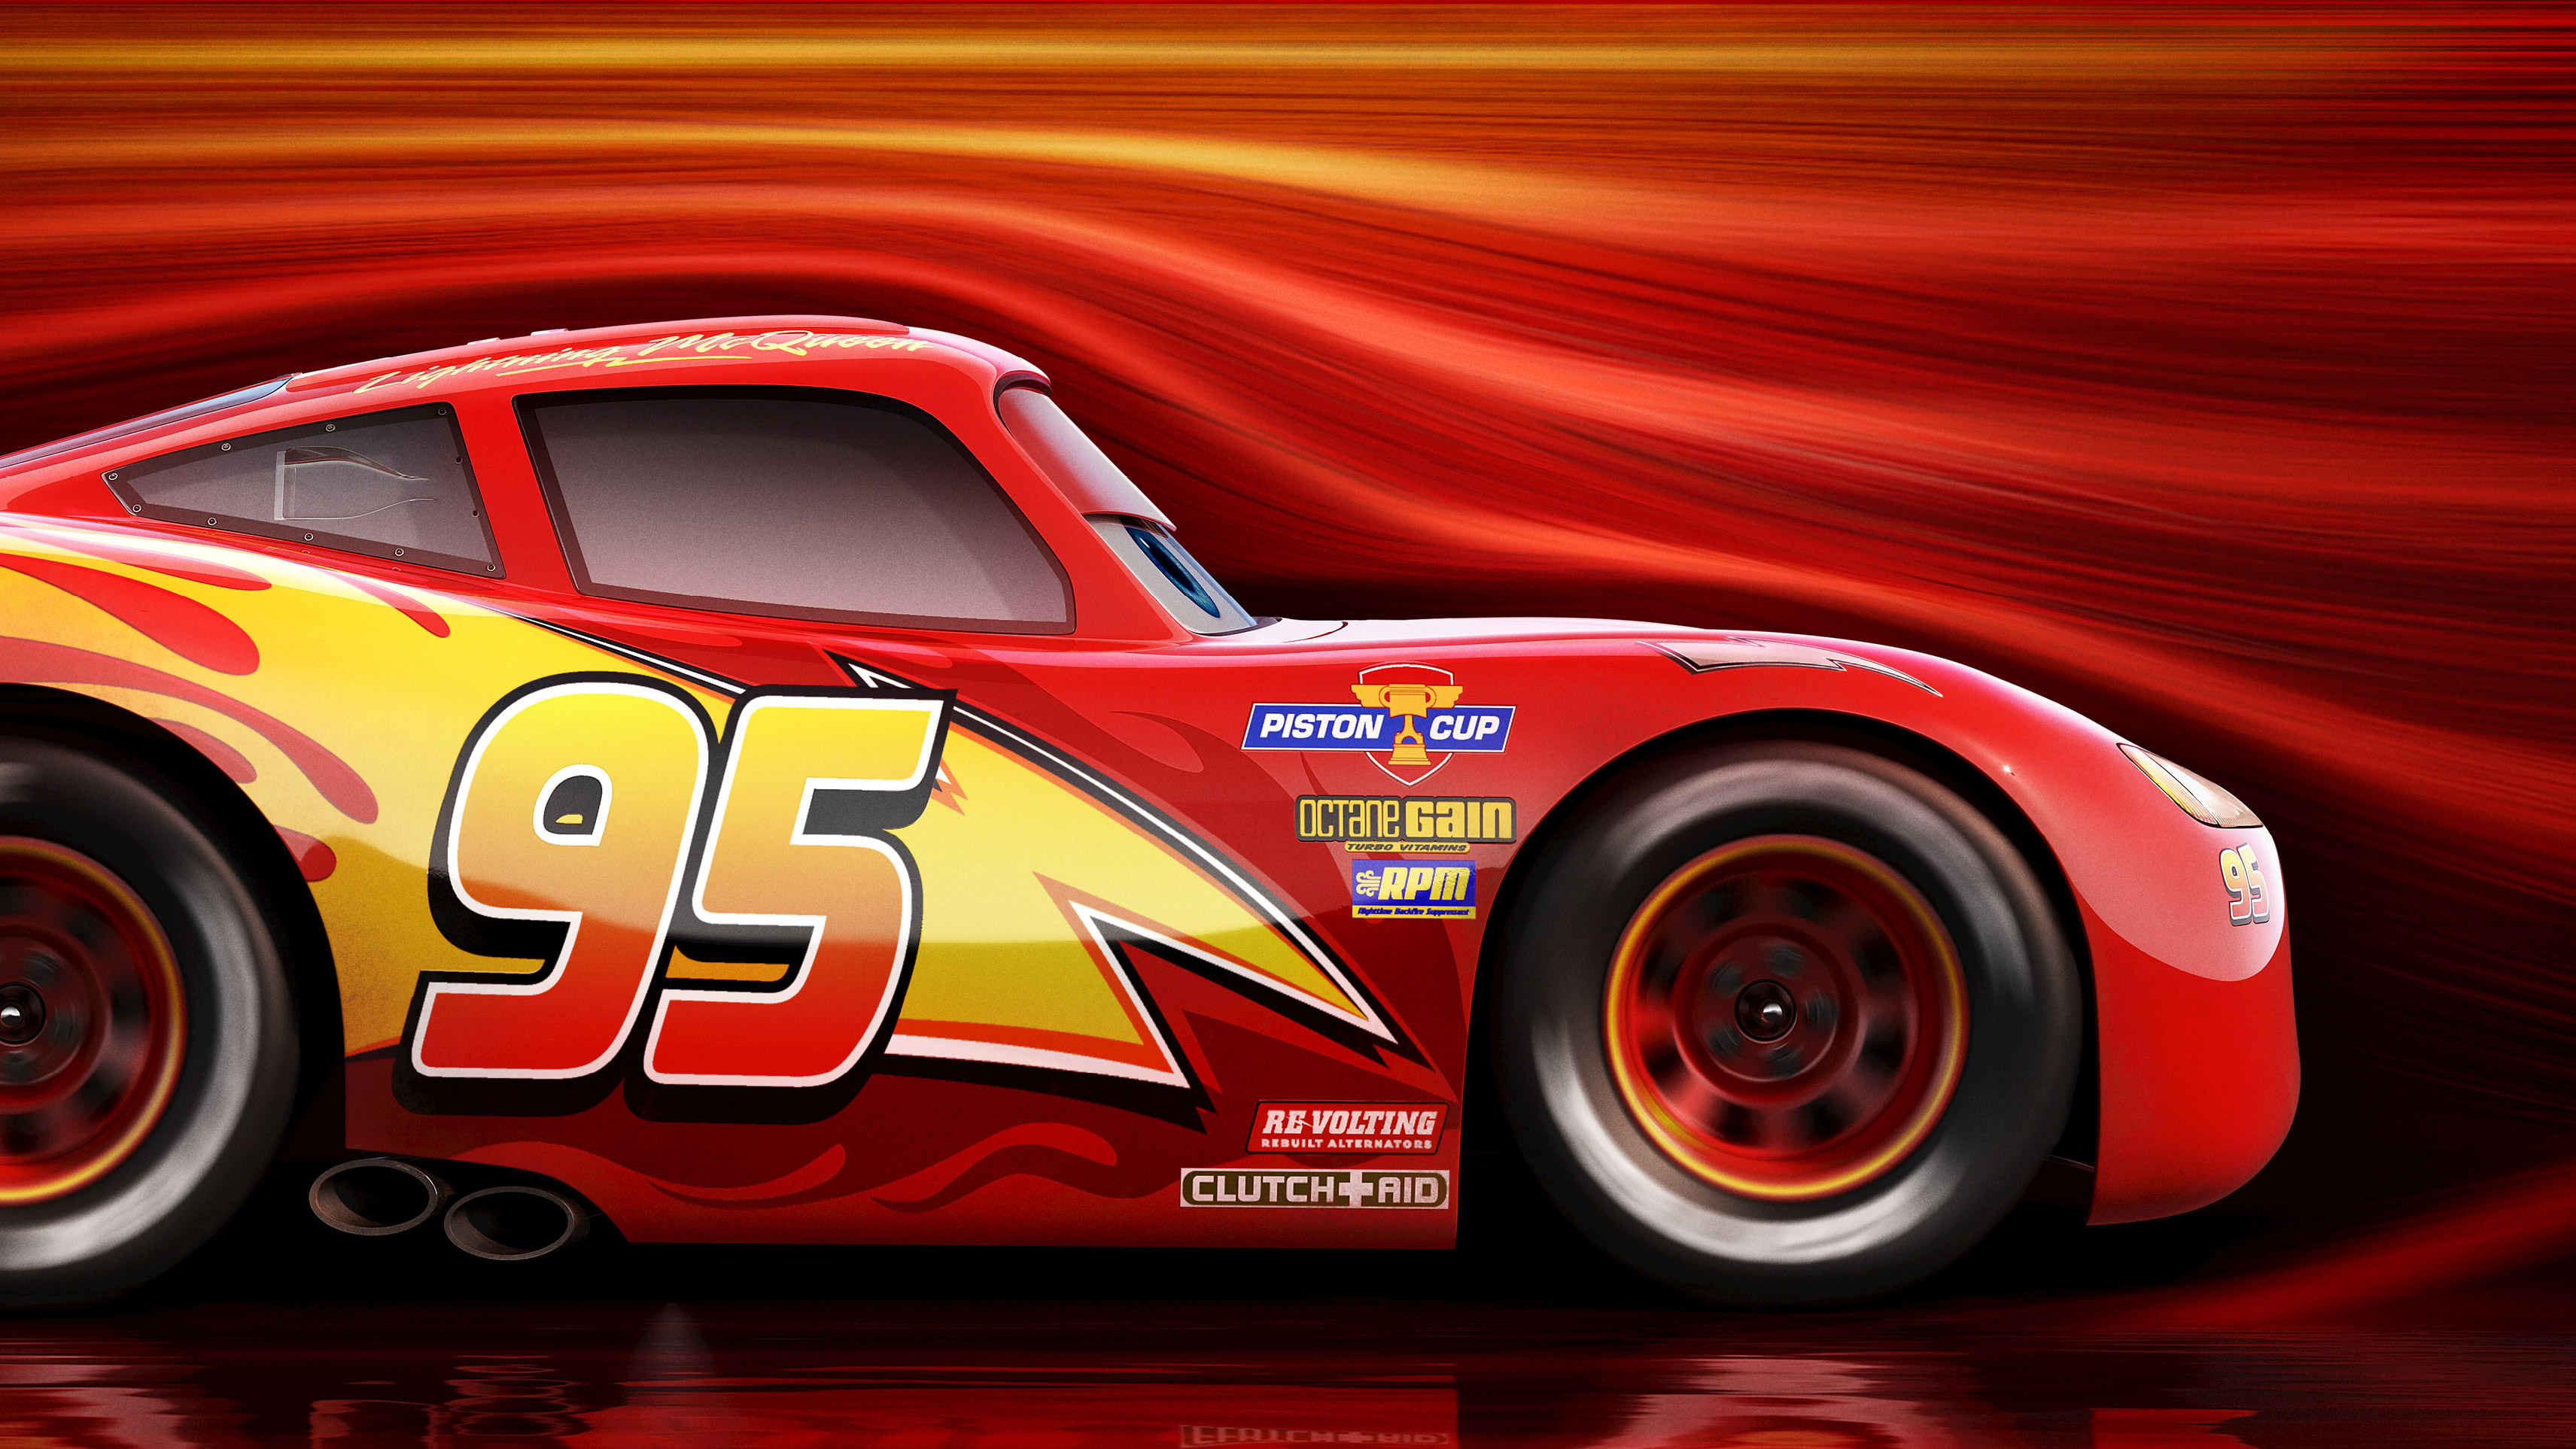 Cars 3 Lightning Mcqueen & Cars 3 Lightning Mcqueen HD Movies 4k Wallpapers Images ...